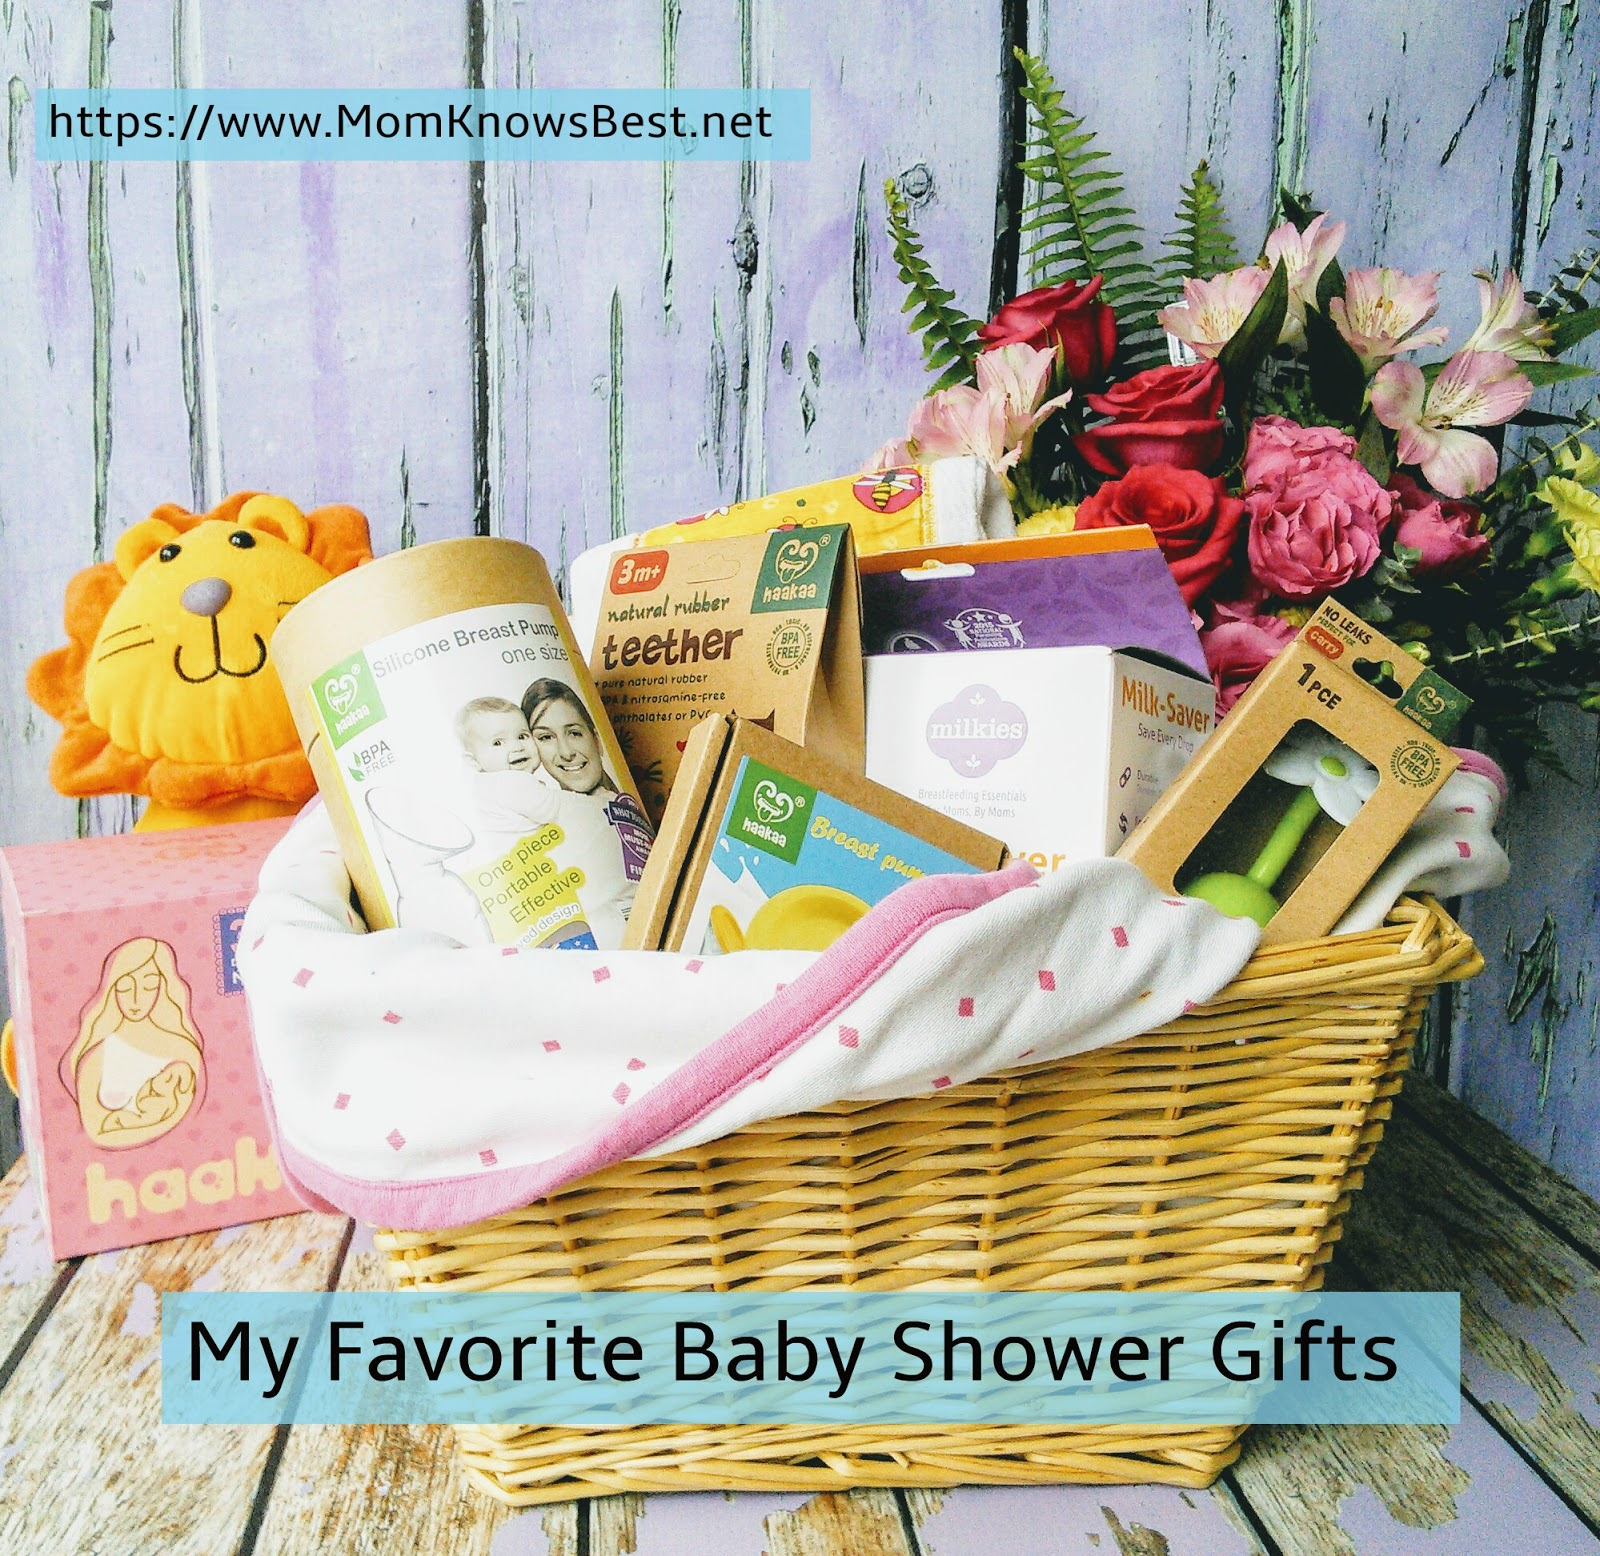 The Honest Baby Arrival Gift Set includes 7 essential items made with safe and natural ingredients to make those first days even more delightful for both baby and mom.